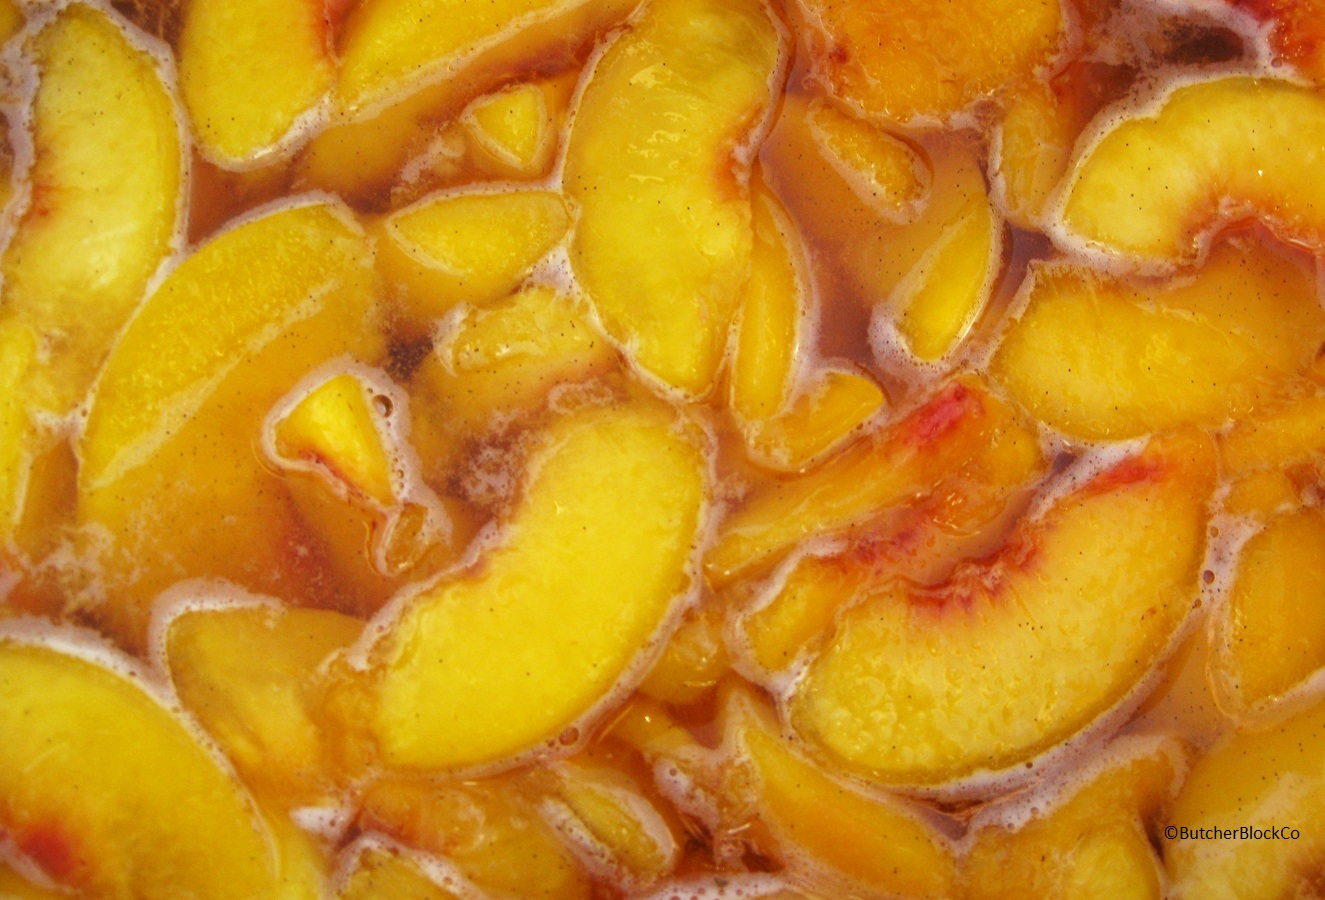 Peach Season! How to Pick the Perfect Peach